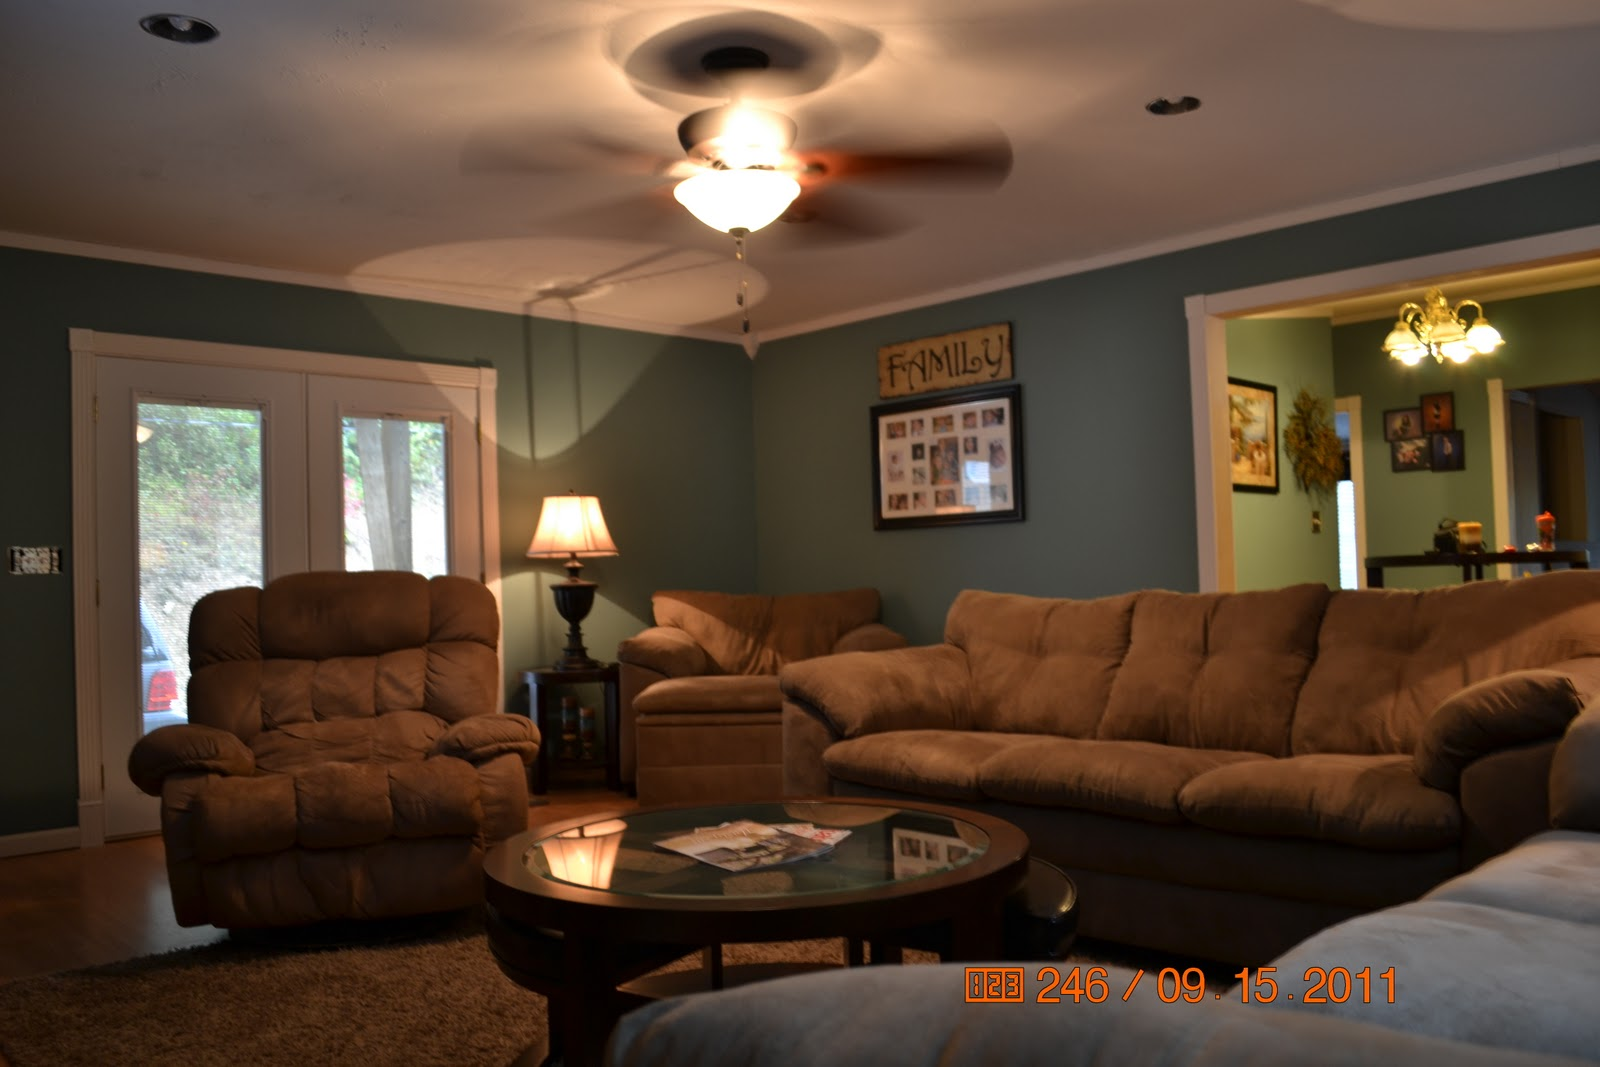 featured home adding an addition mobile home kitchen remodel a huge kitchen and dining area The double wide is now an amazingly spacious and gorgeous home Of course it was very nice before all the additions